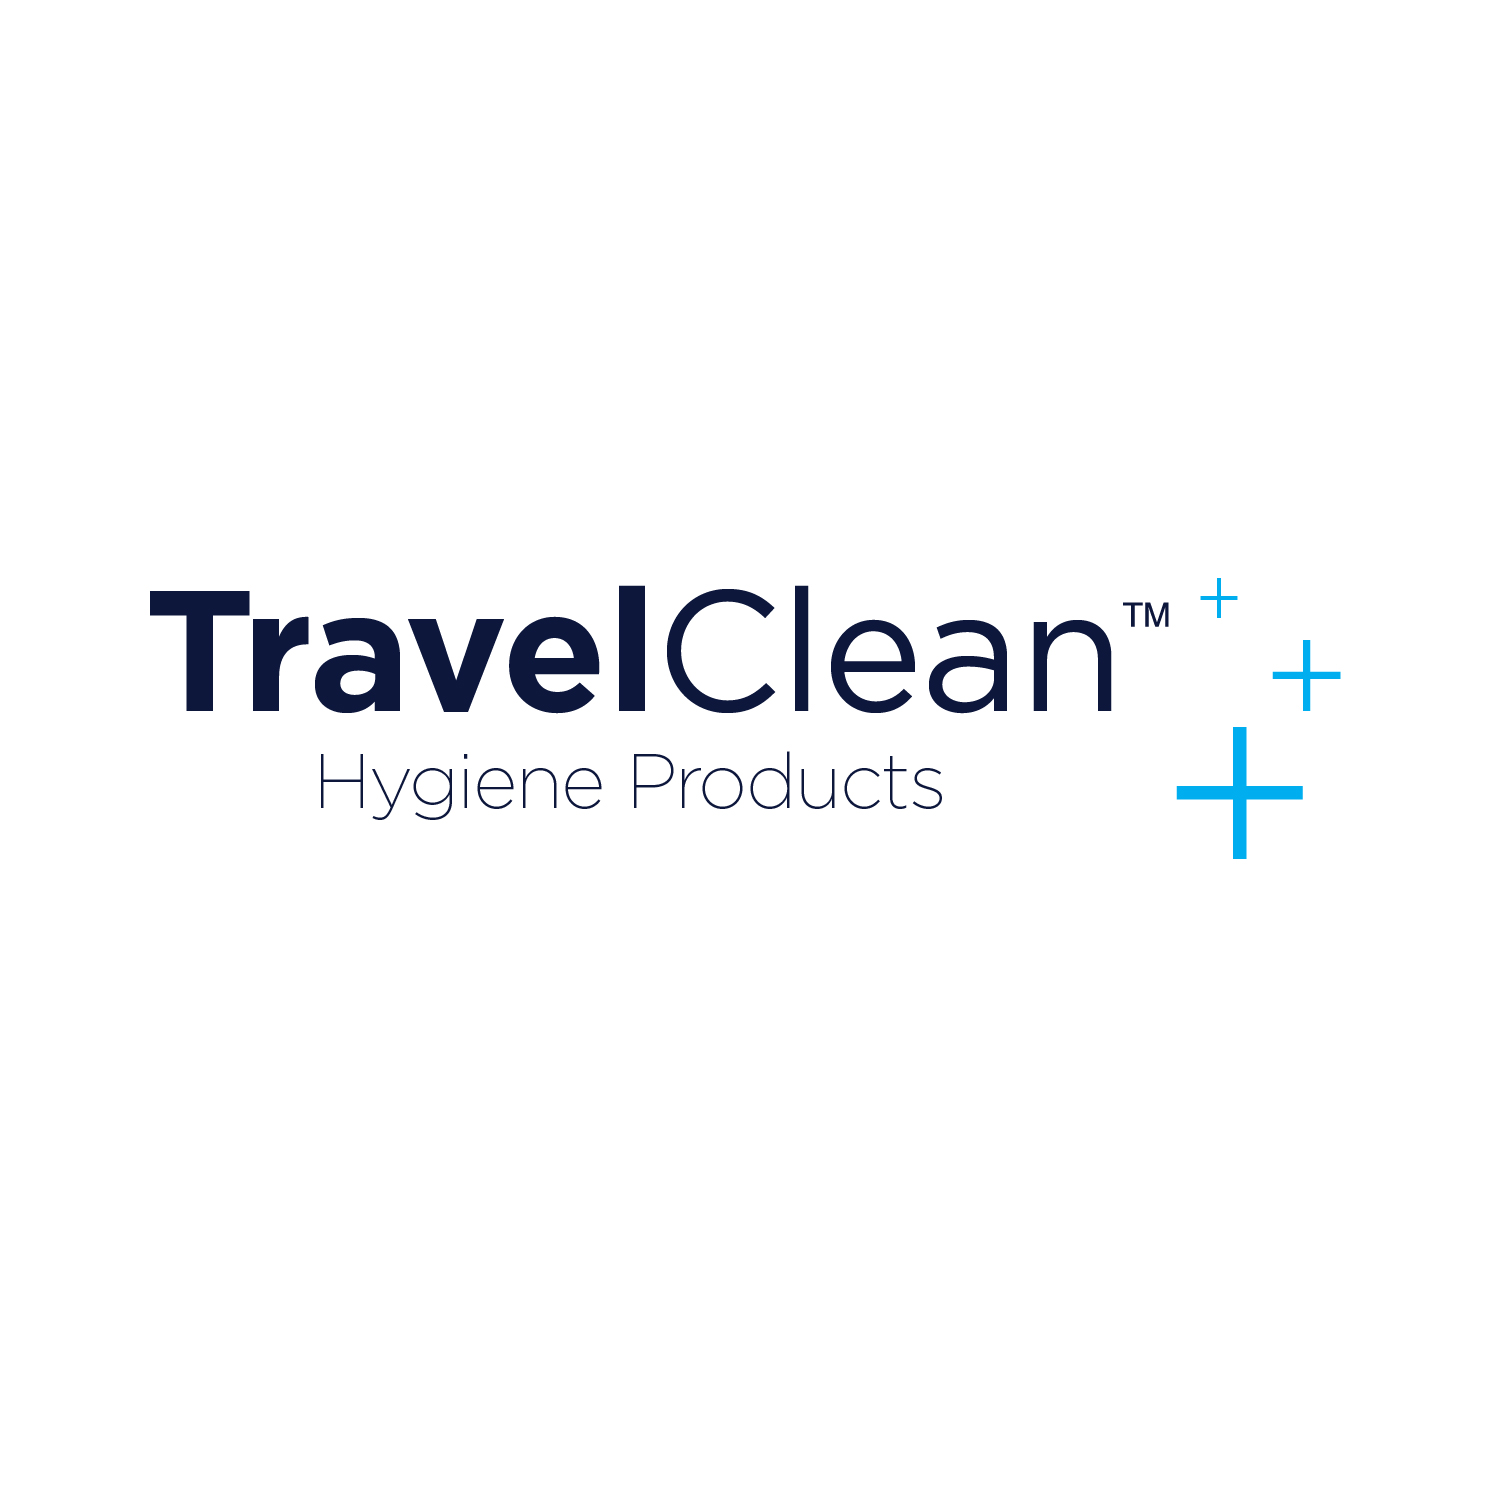 TravelClean